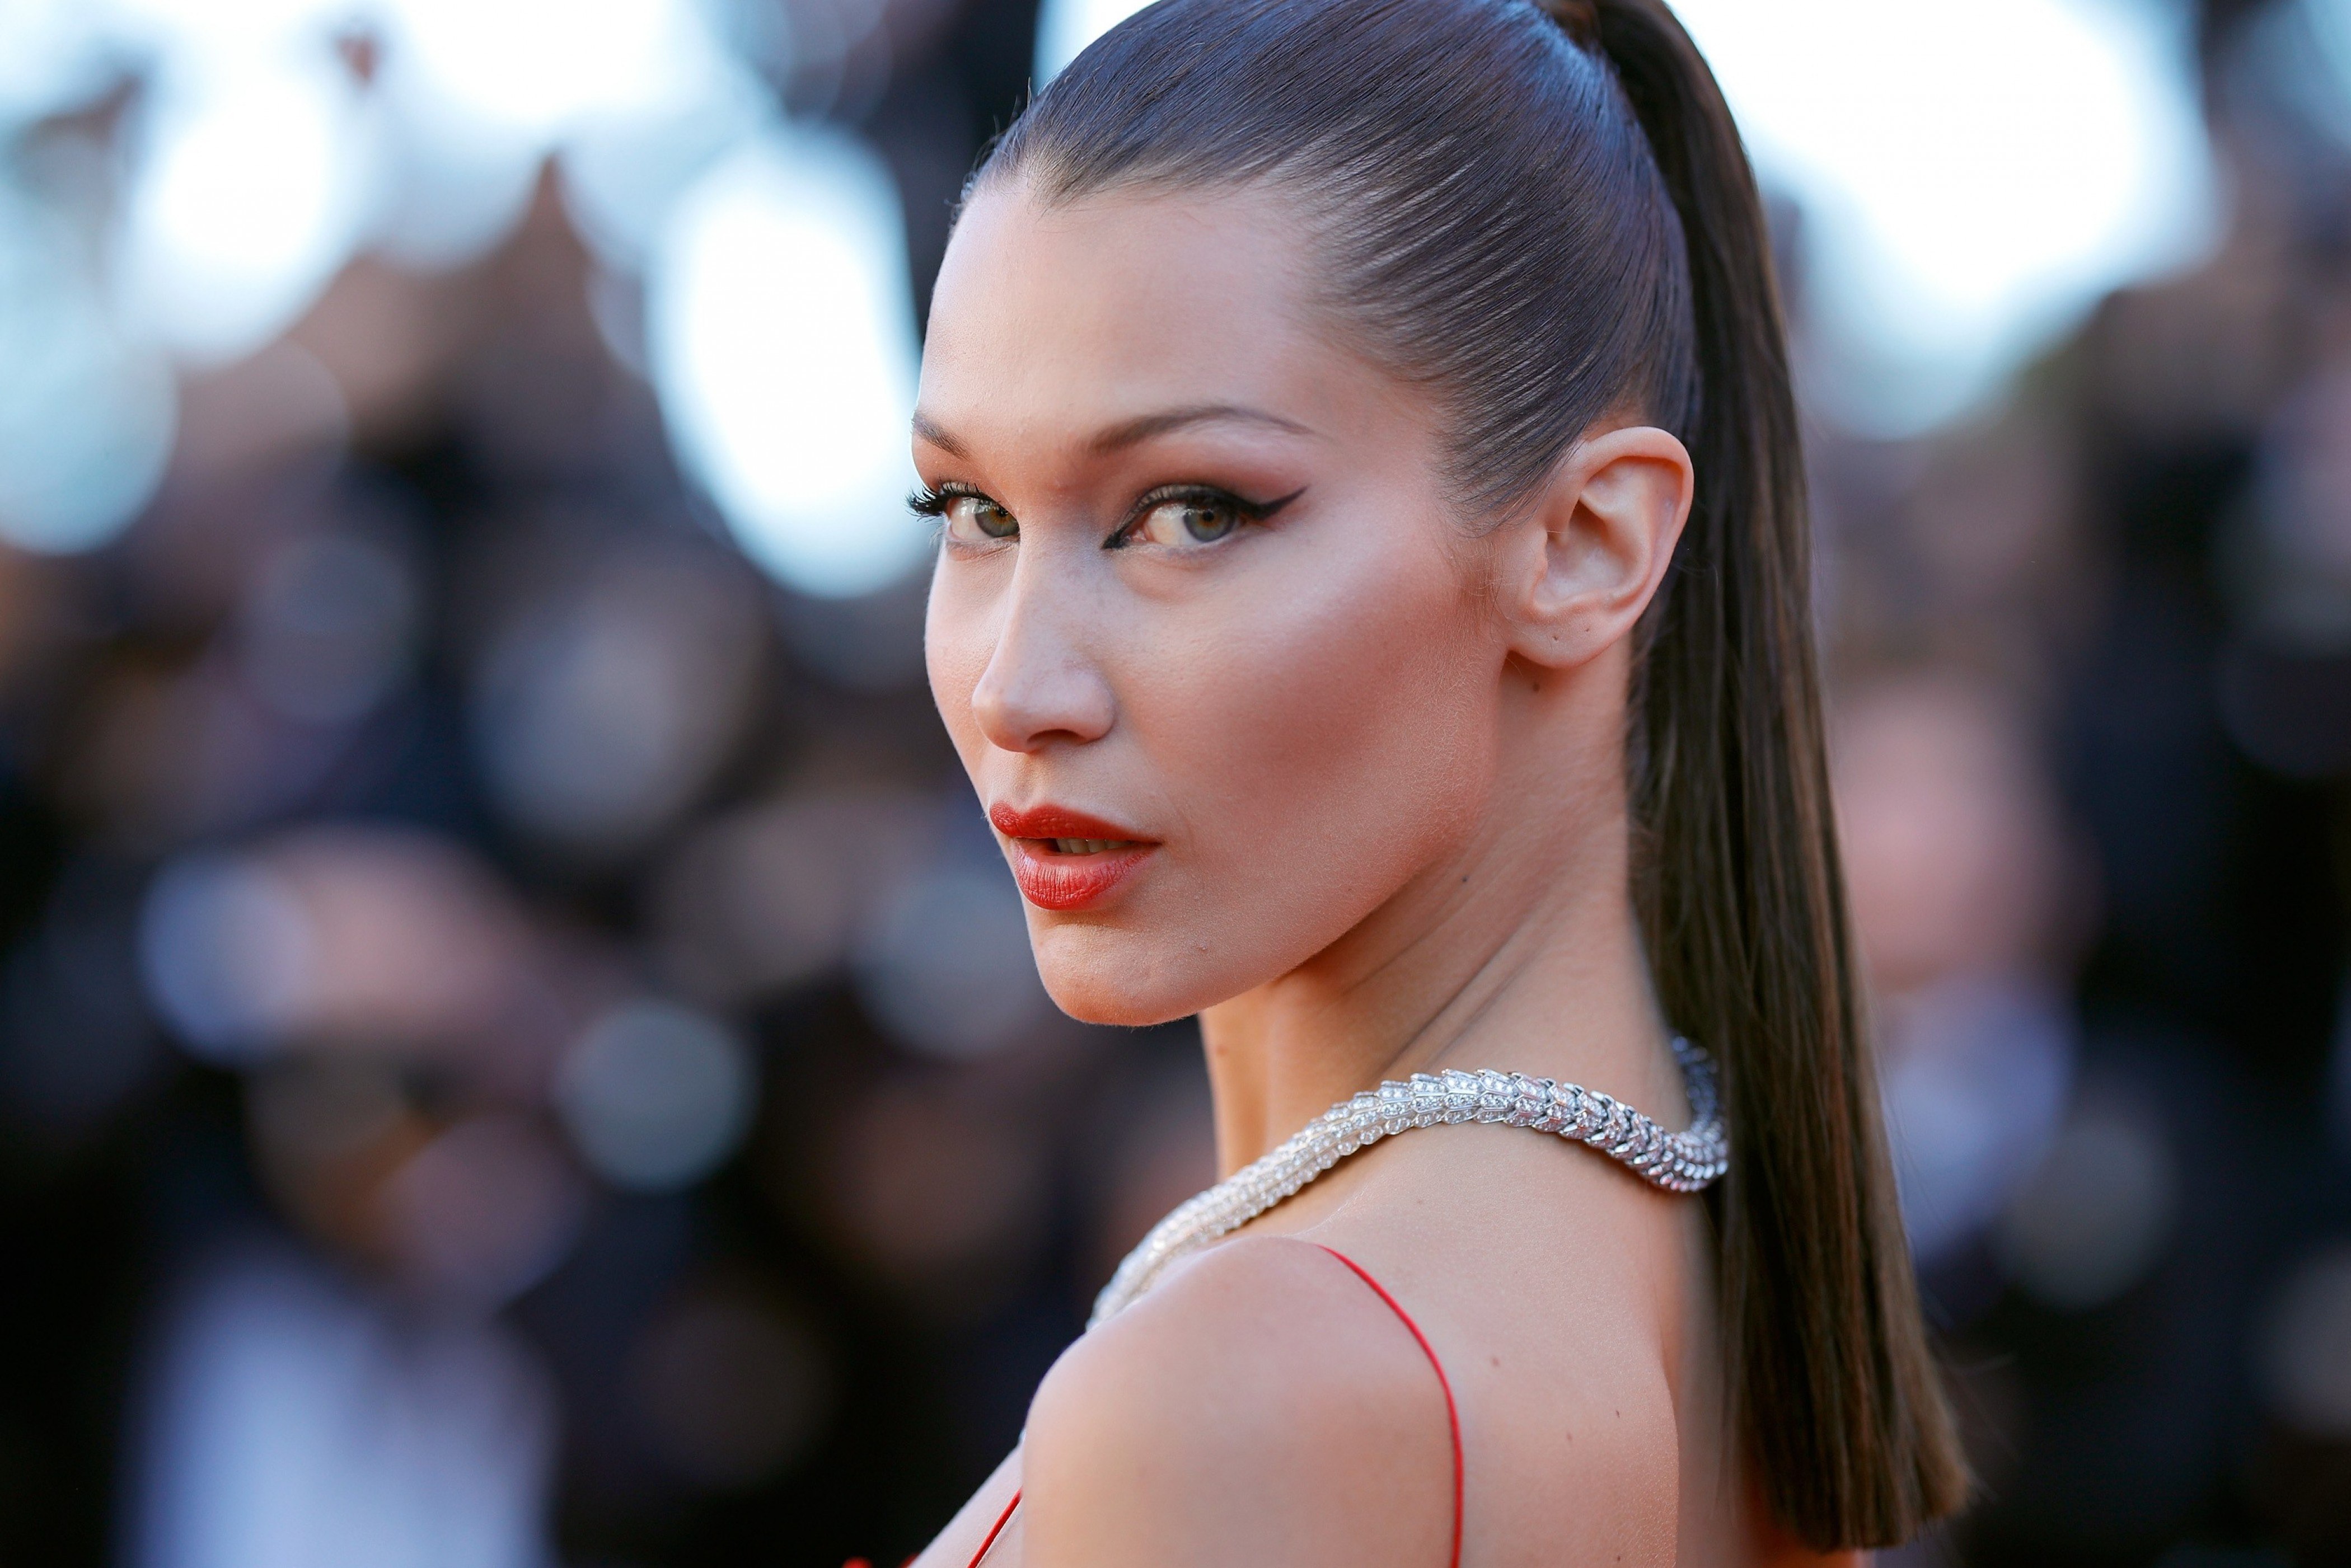 Nike Quotes Iphone Wallpaper Wallpaper Bella Hadid Cannes Film Festival 2016 Red